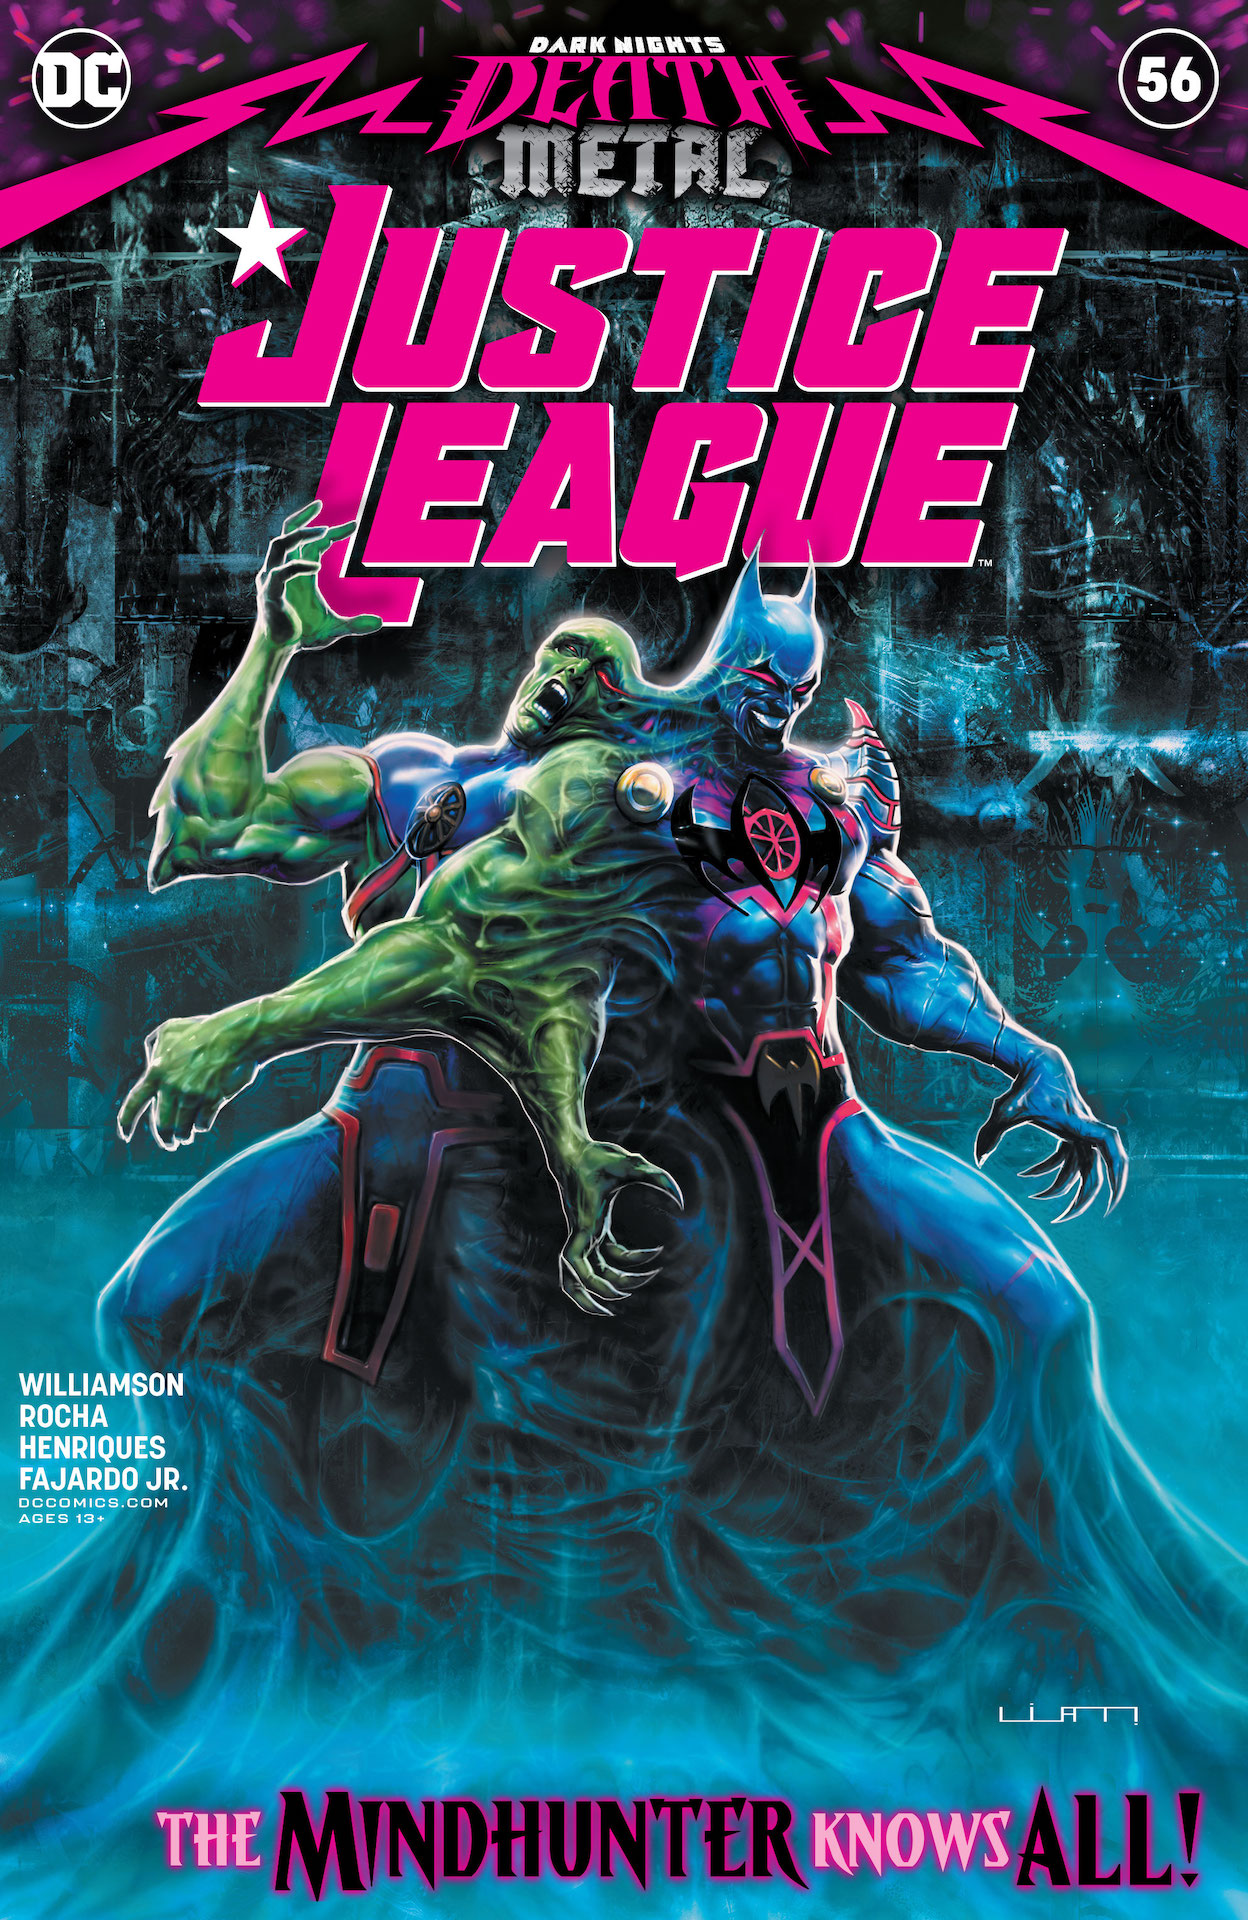 DC Preview: Justice League #56